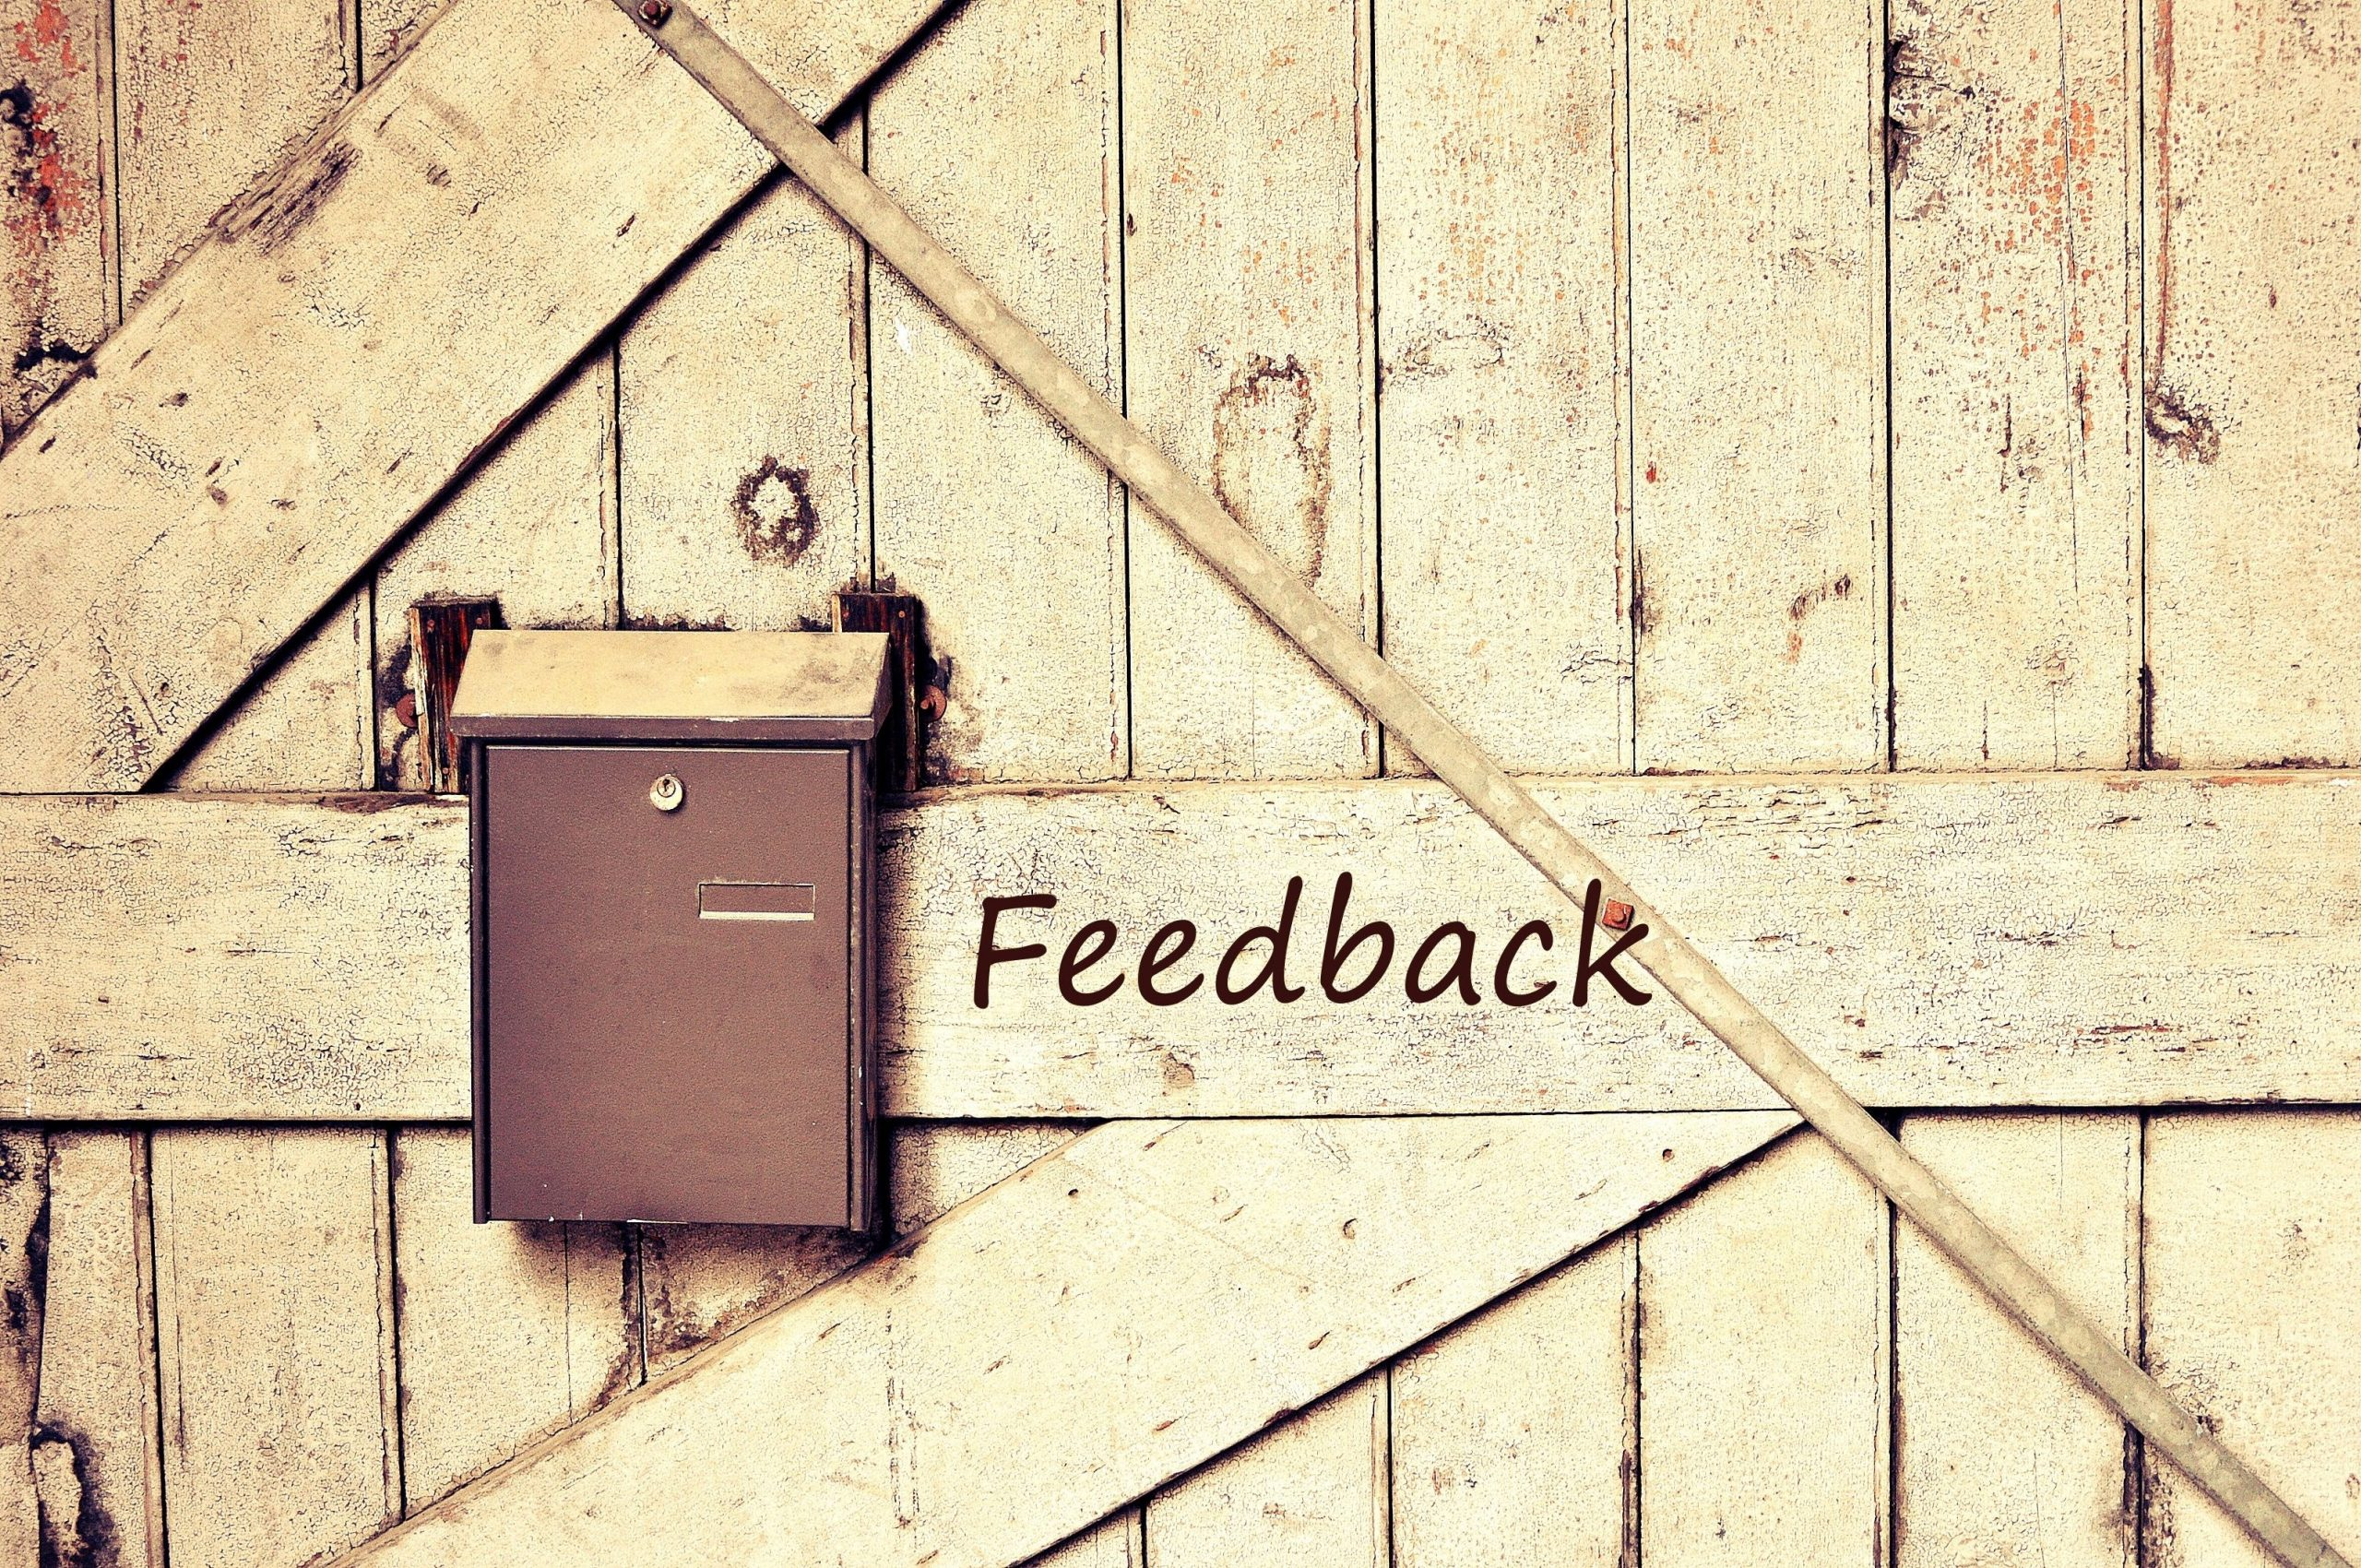 Building a Feedback Culture: the 2 Questions for HR